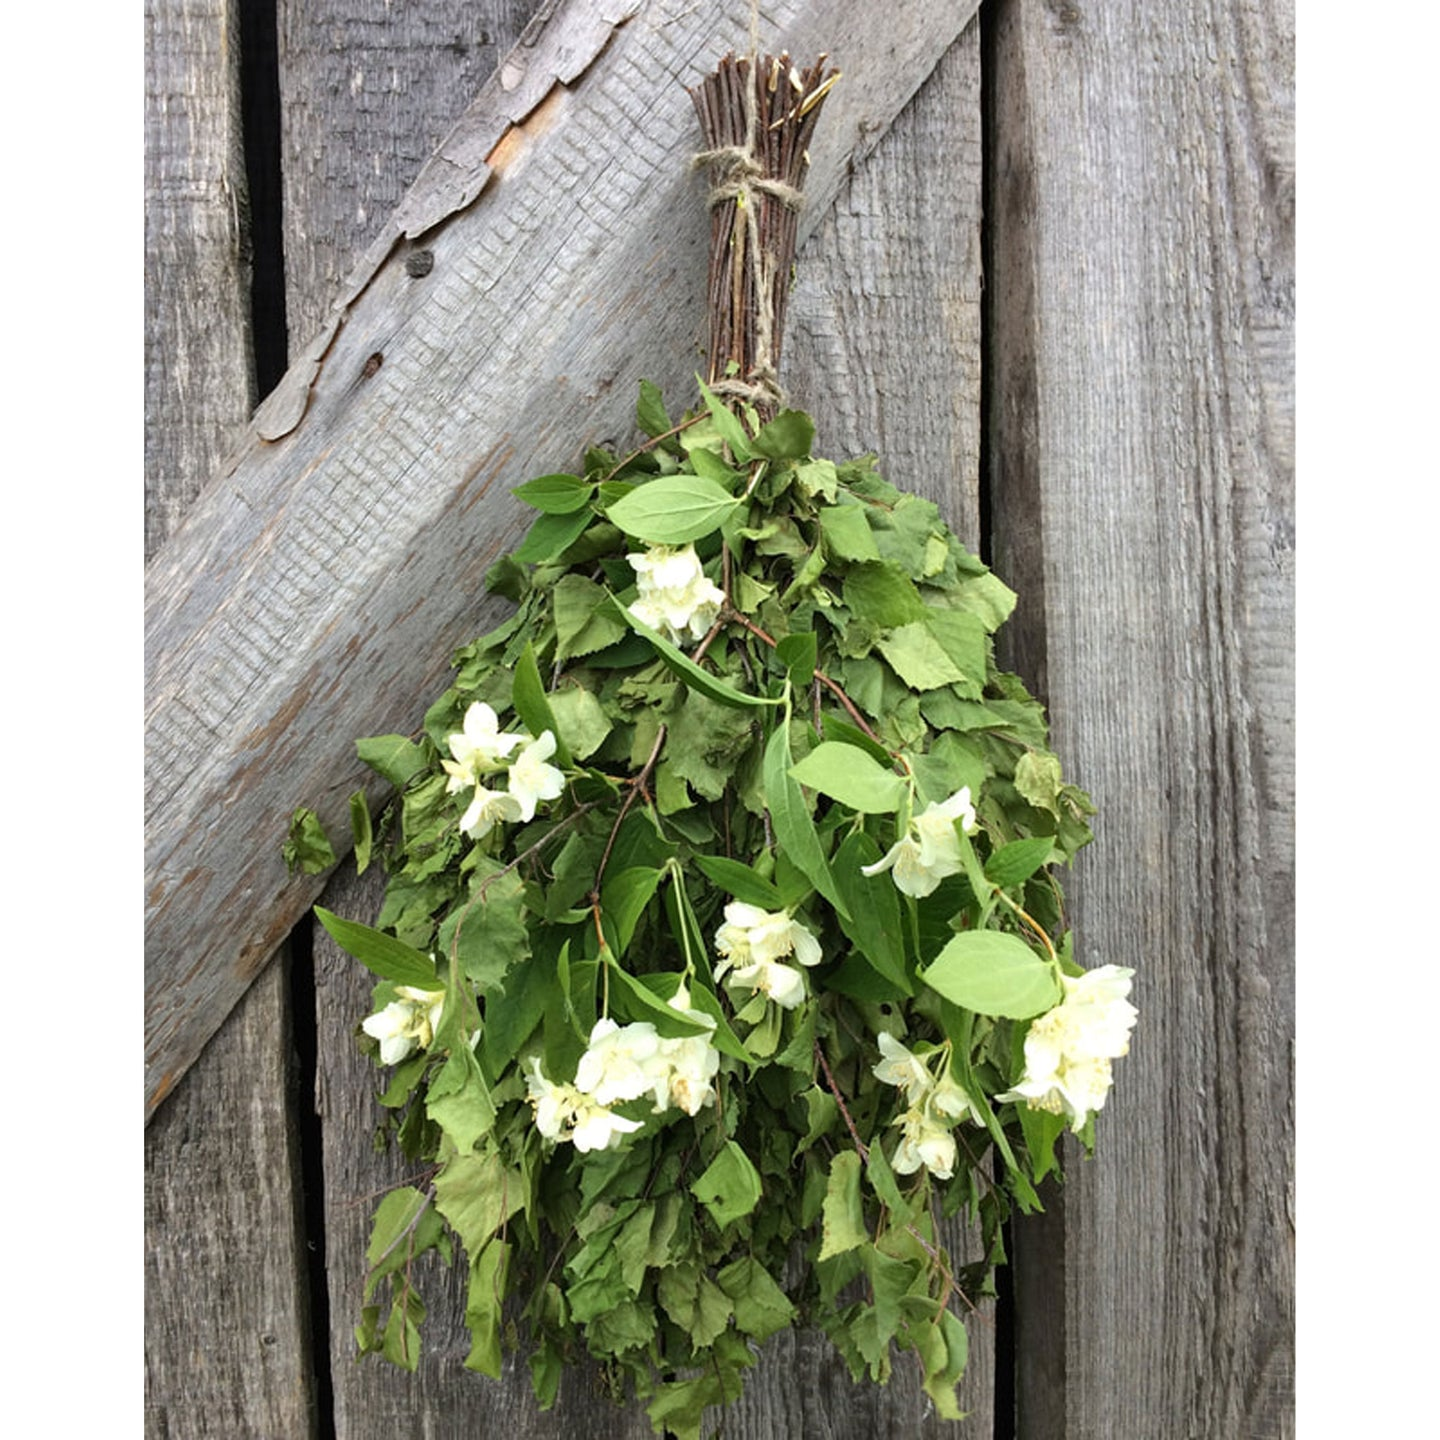 Dried Hand Made Sauna Whisk / Sauna Vihta - Birch & Jasmine  Sauna Whisks / Sauna Vihta Finnmark Sauna